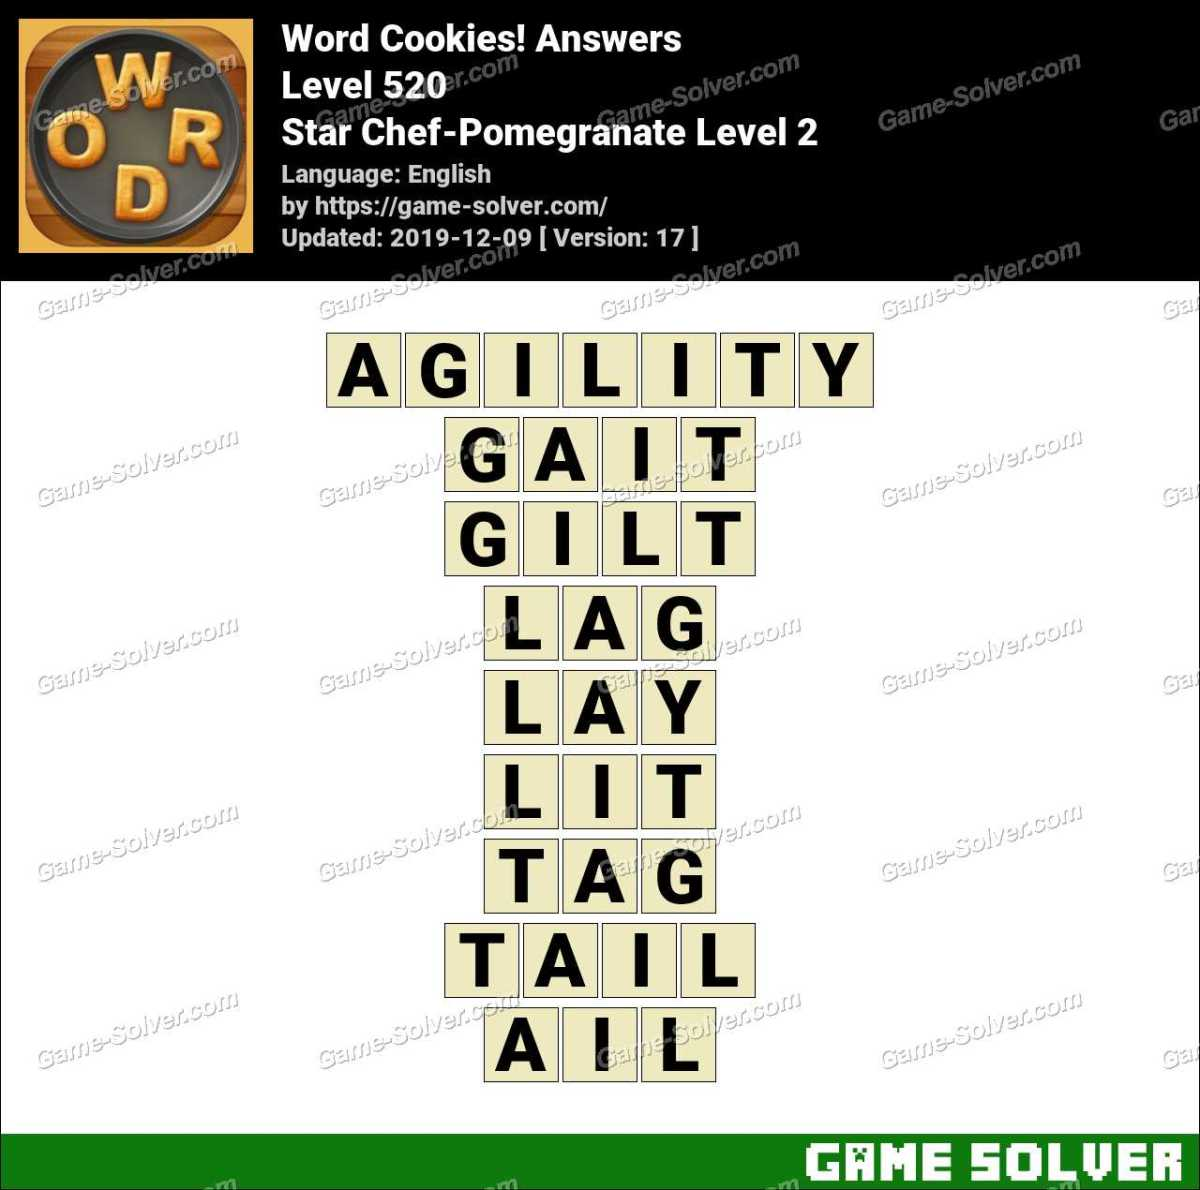 Word Cookies Star Chef-Pomegranate Level 2 Answers